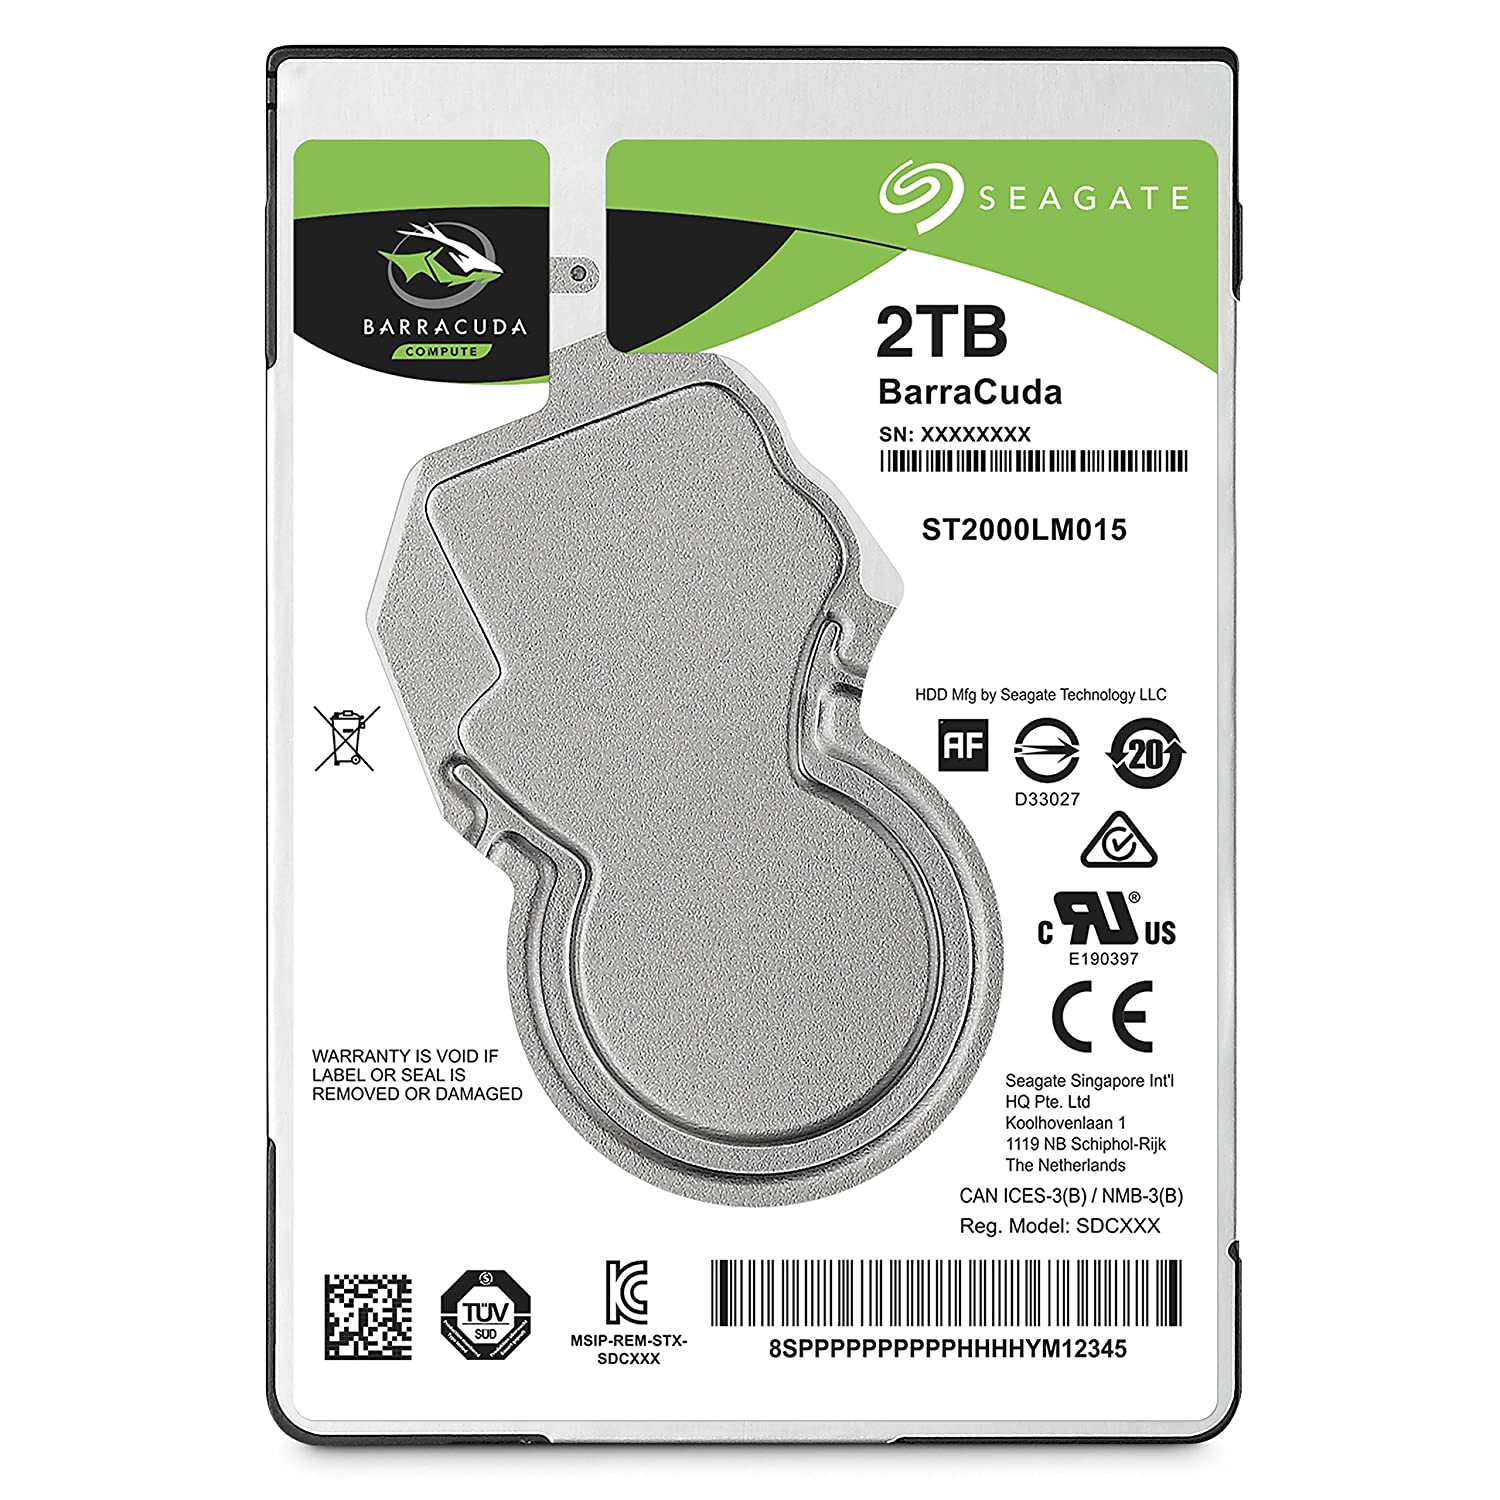 Seagate 2TB Barracuda HDD [ST2000LM015]